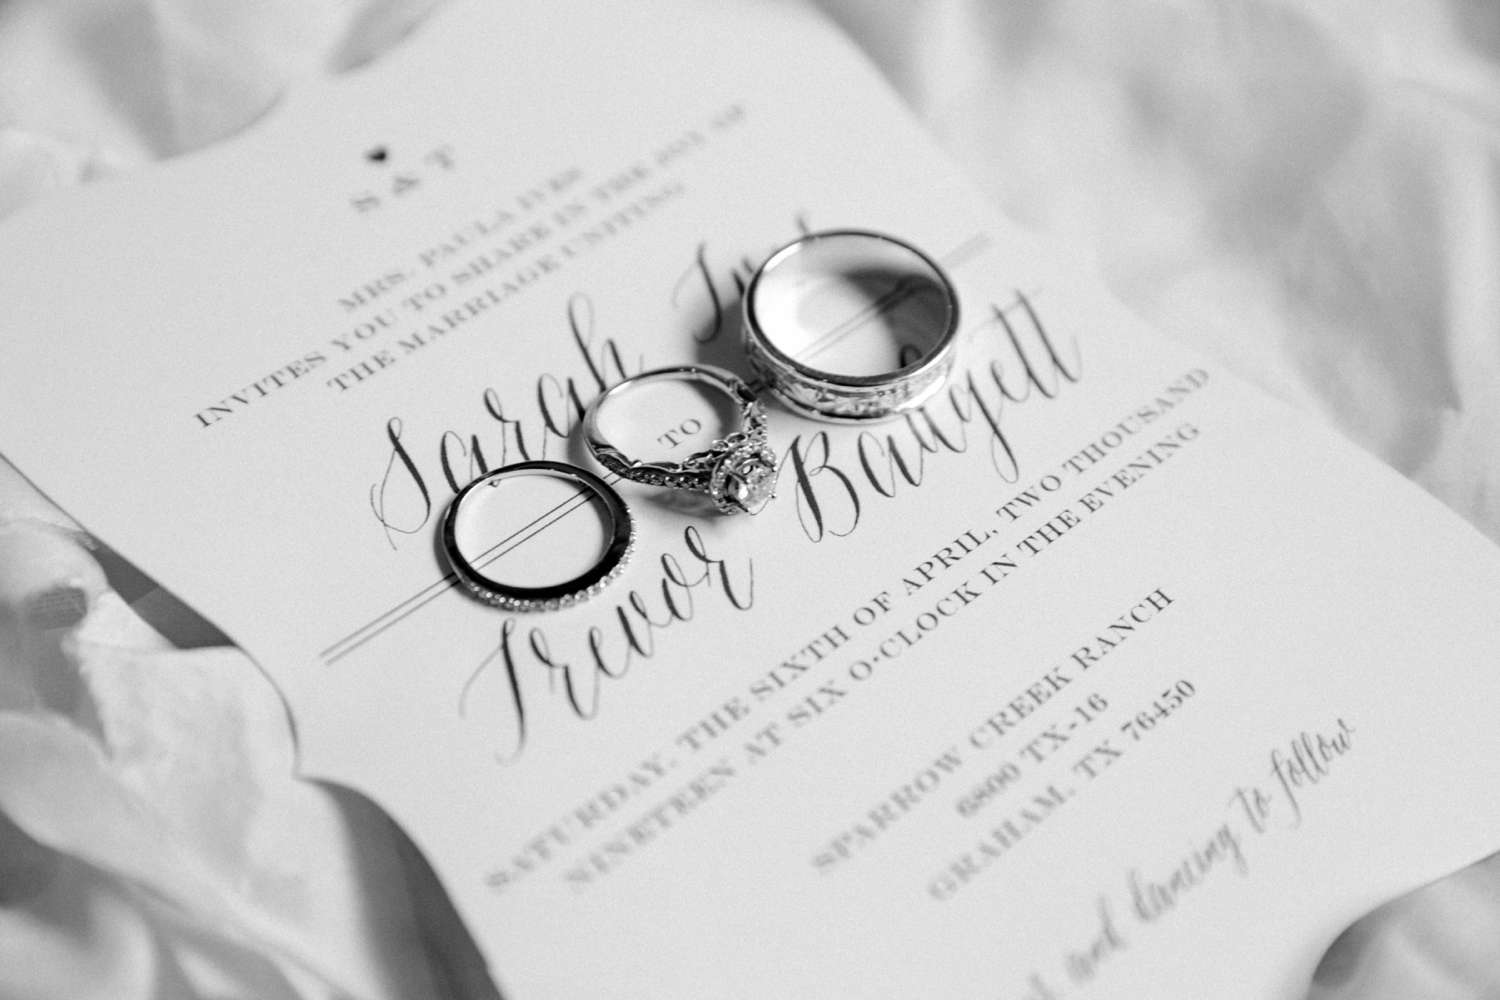 SARAH+TREVOR+BADGETT+SPARROW+CREEK+GRAHAM+TEXAS+ALLEEJ+WEDDINGS_0049.jpg